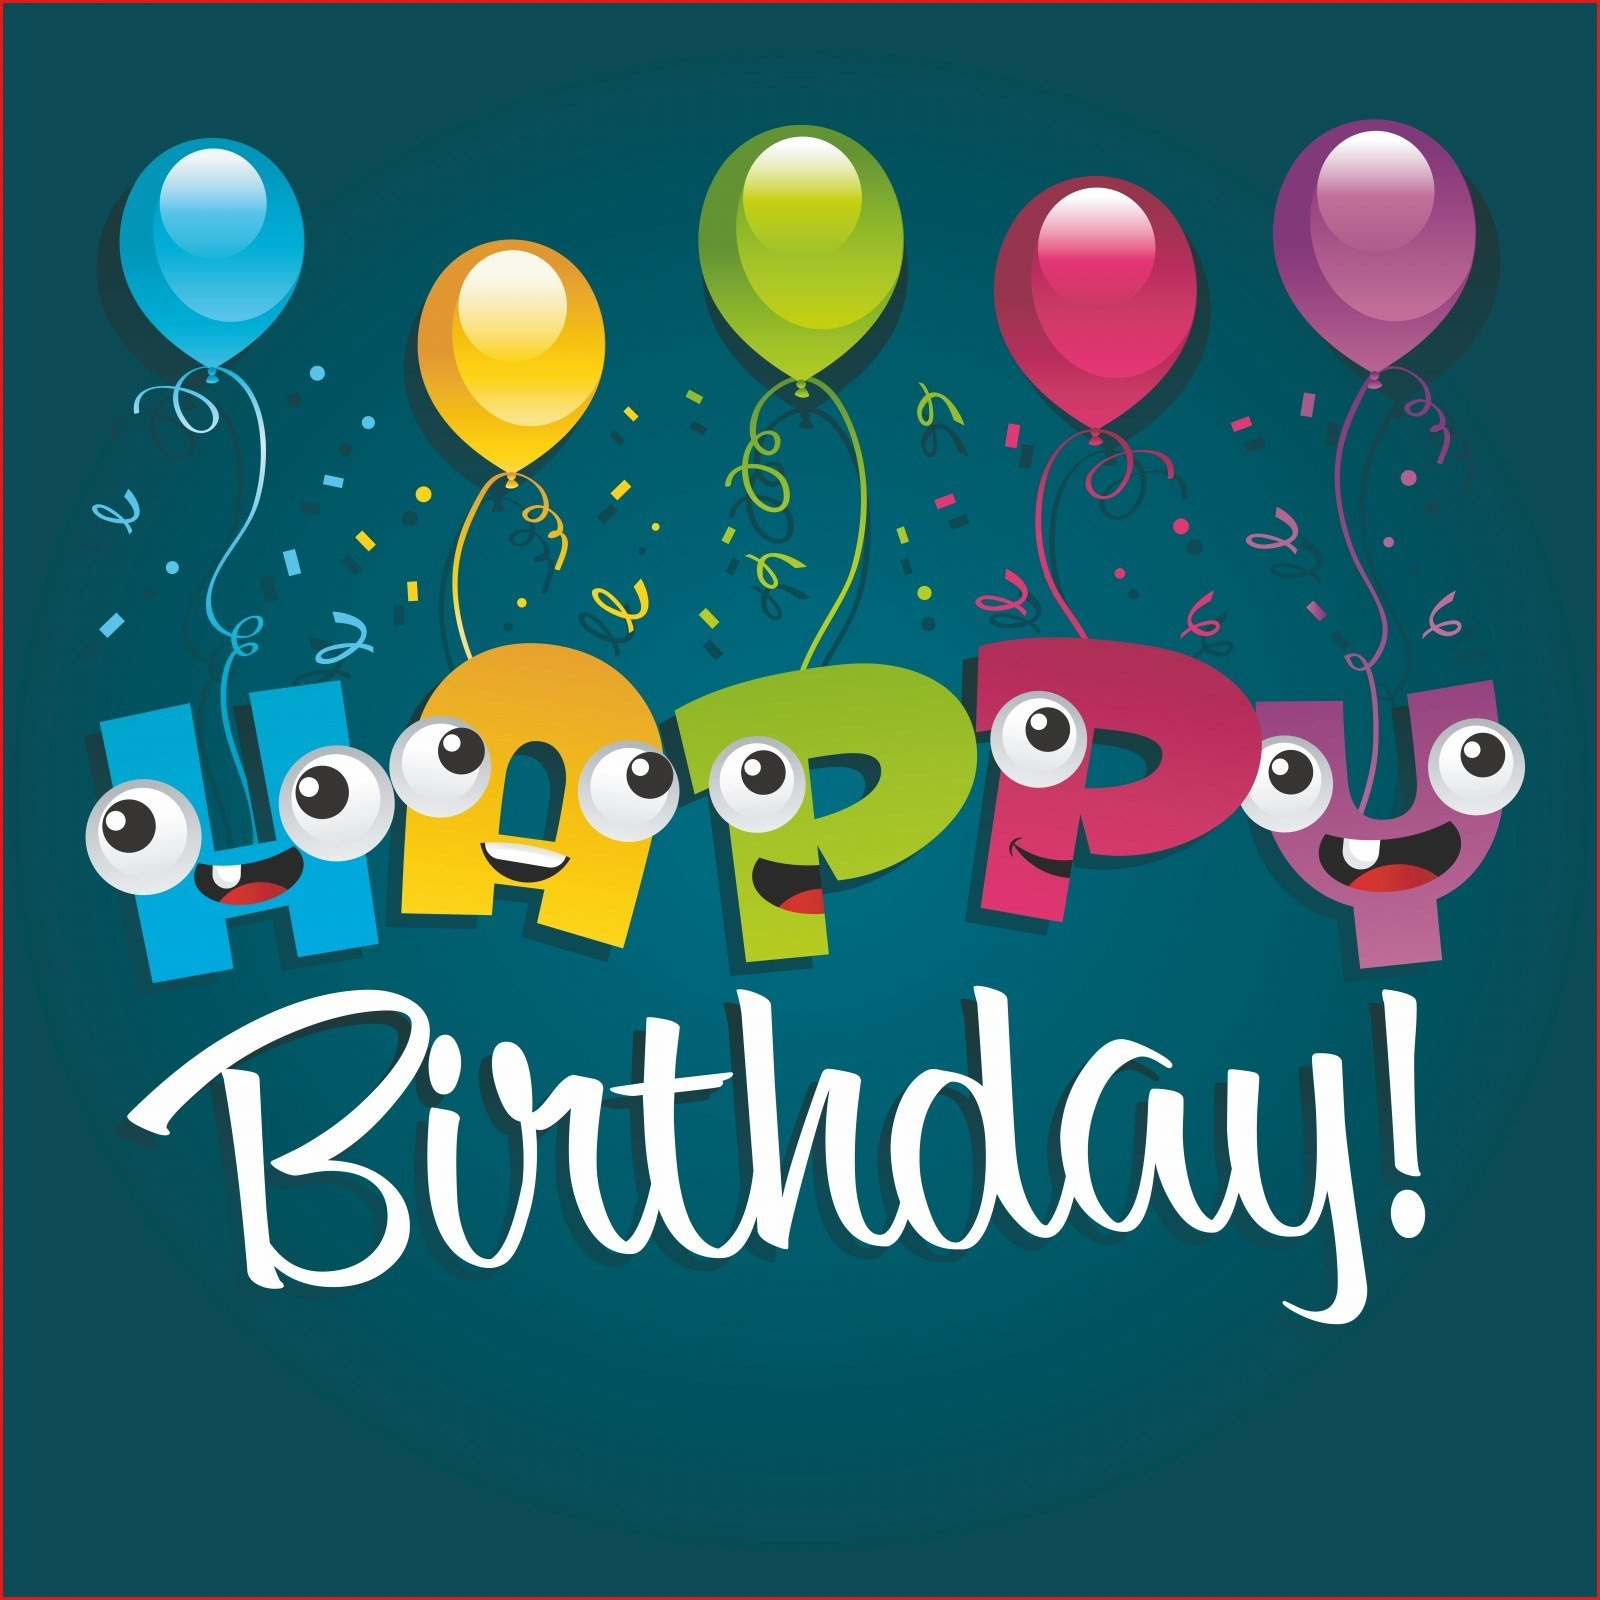 18 Beautiful Birthday Cards Online Free Funny : Lenq - Free Online Funny Birthday Cards Printable